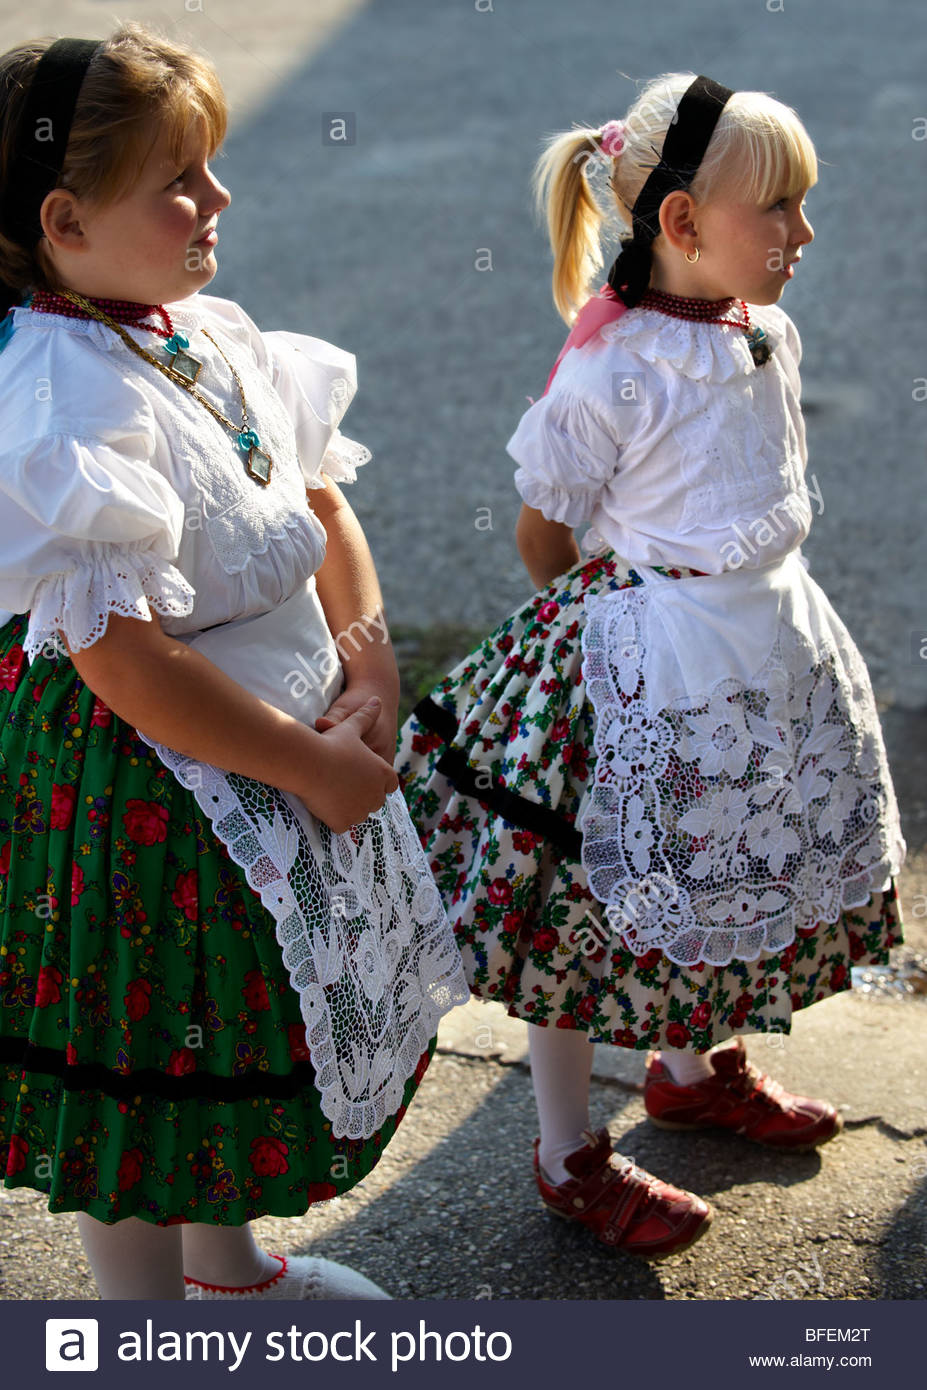 Young Svab children in traditional dress, Hajos (Haj s) Hungary - Stock Image